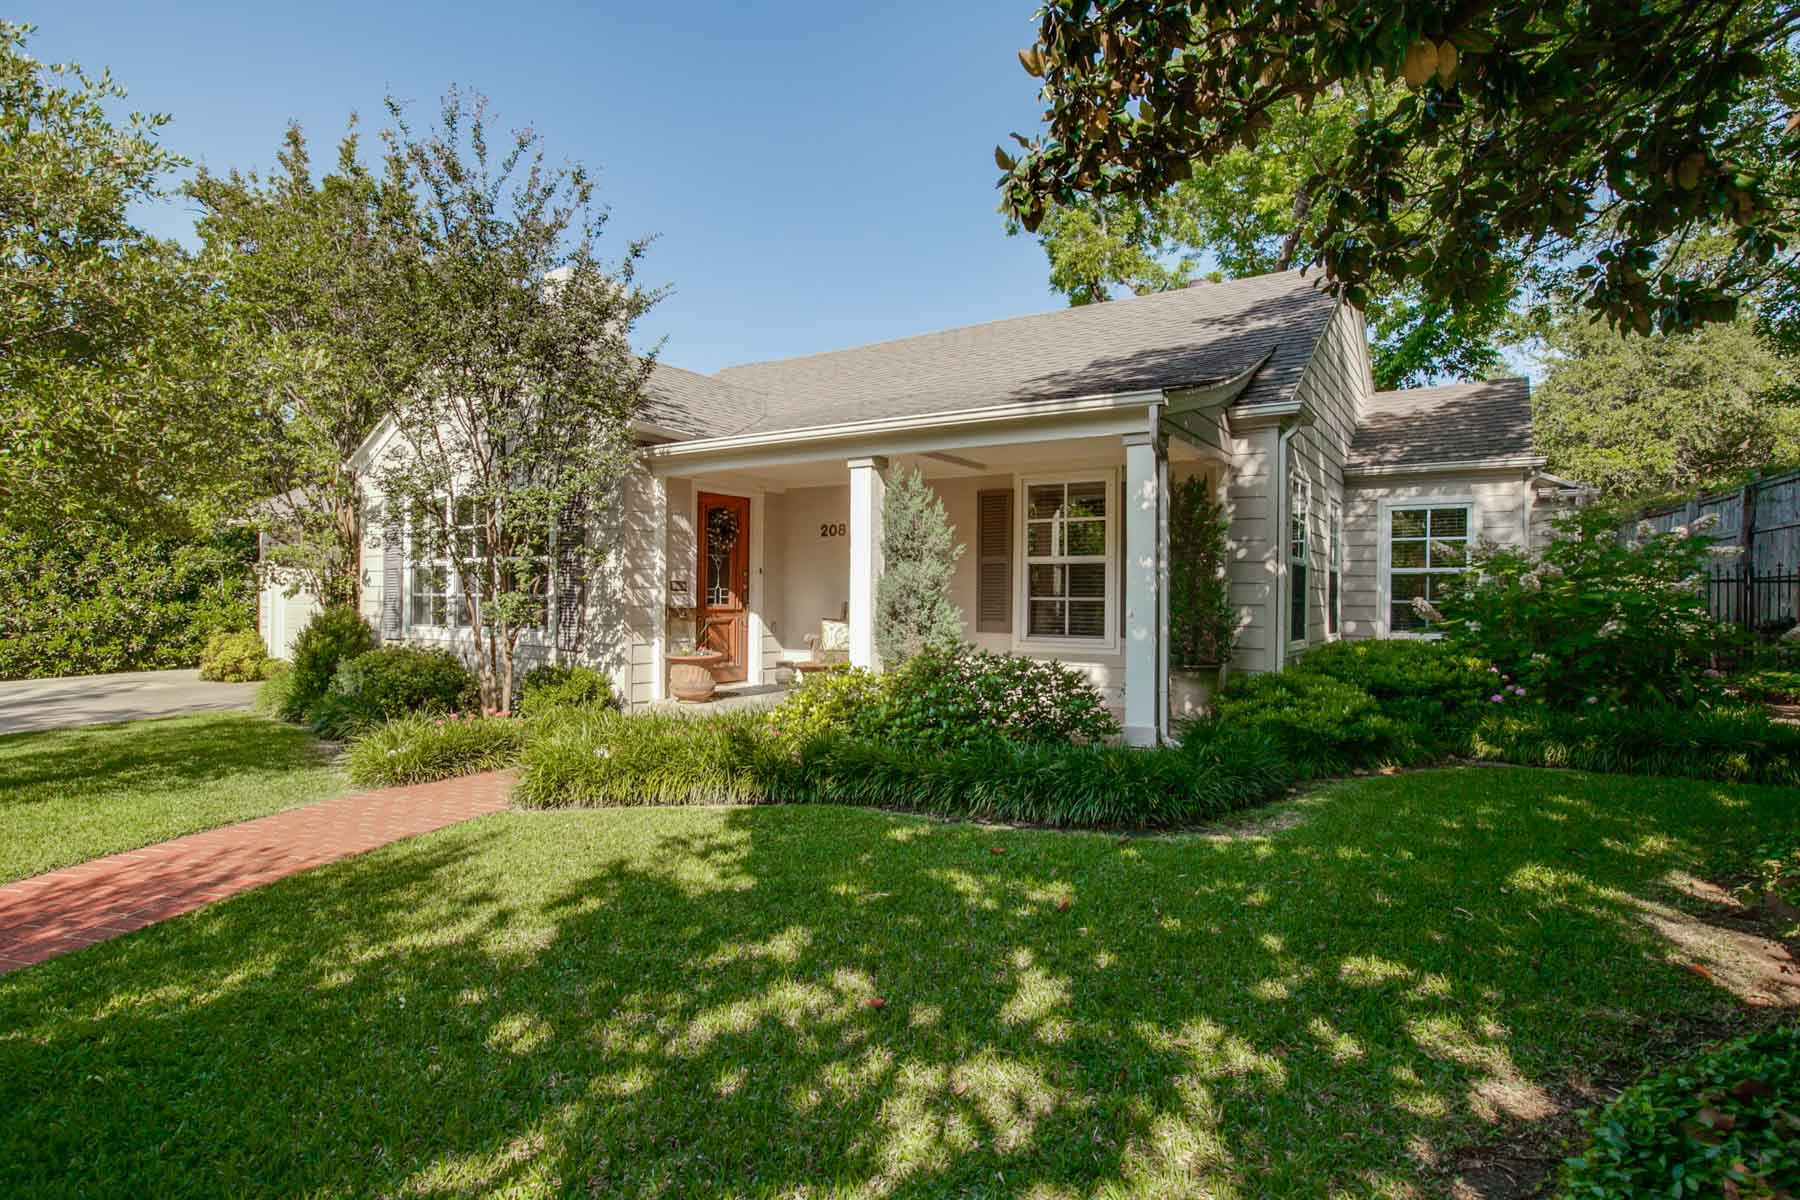 Single Family Home for Sale at Traditional Fort Worth Family Home 208 Crestwood Drive Fort Worth, Texas, 76107 United States